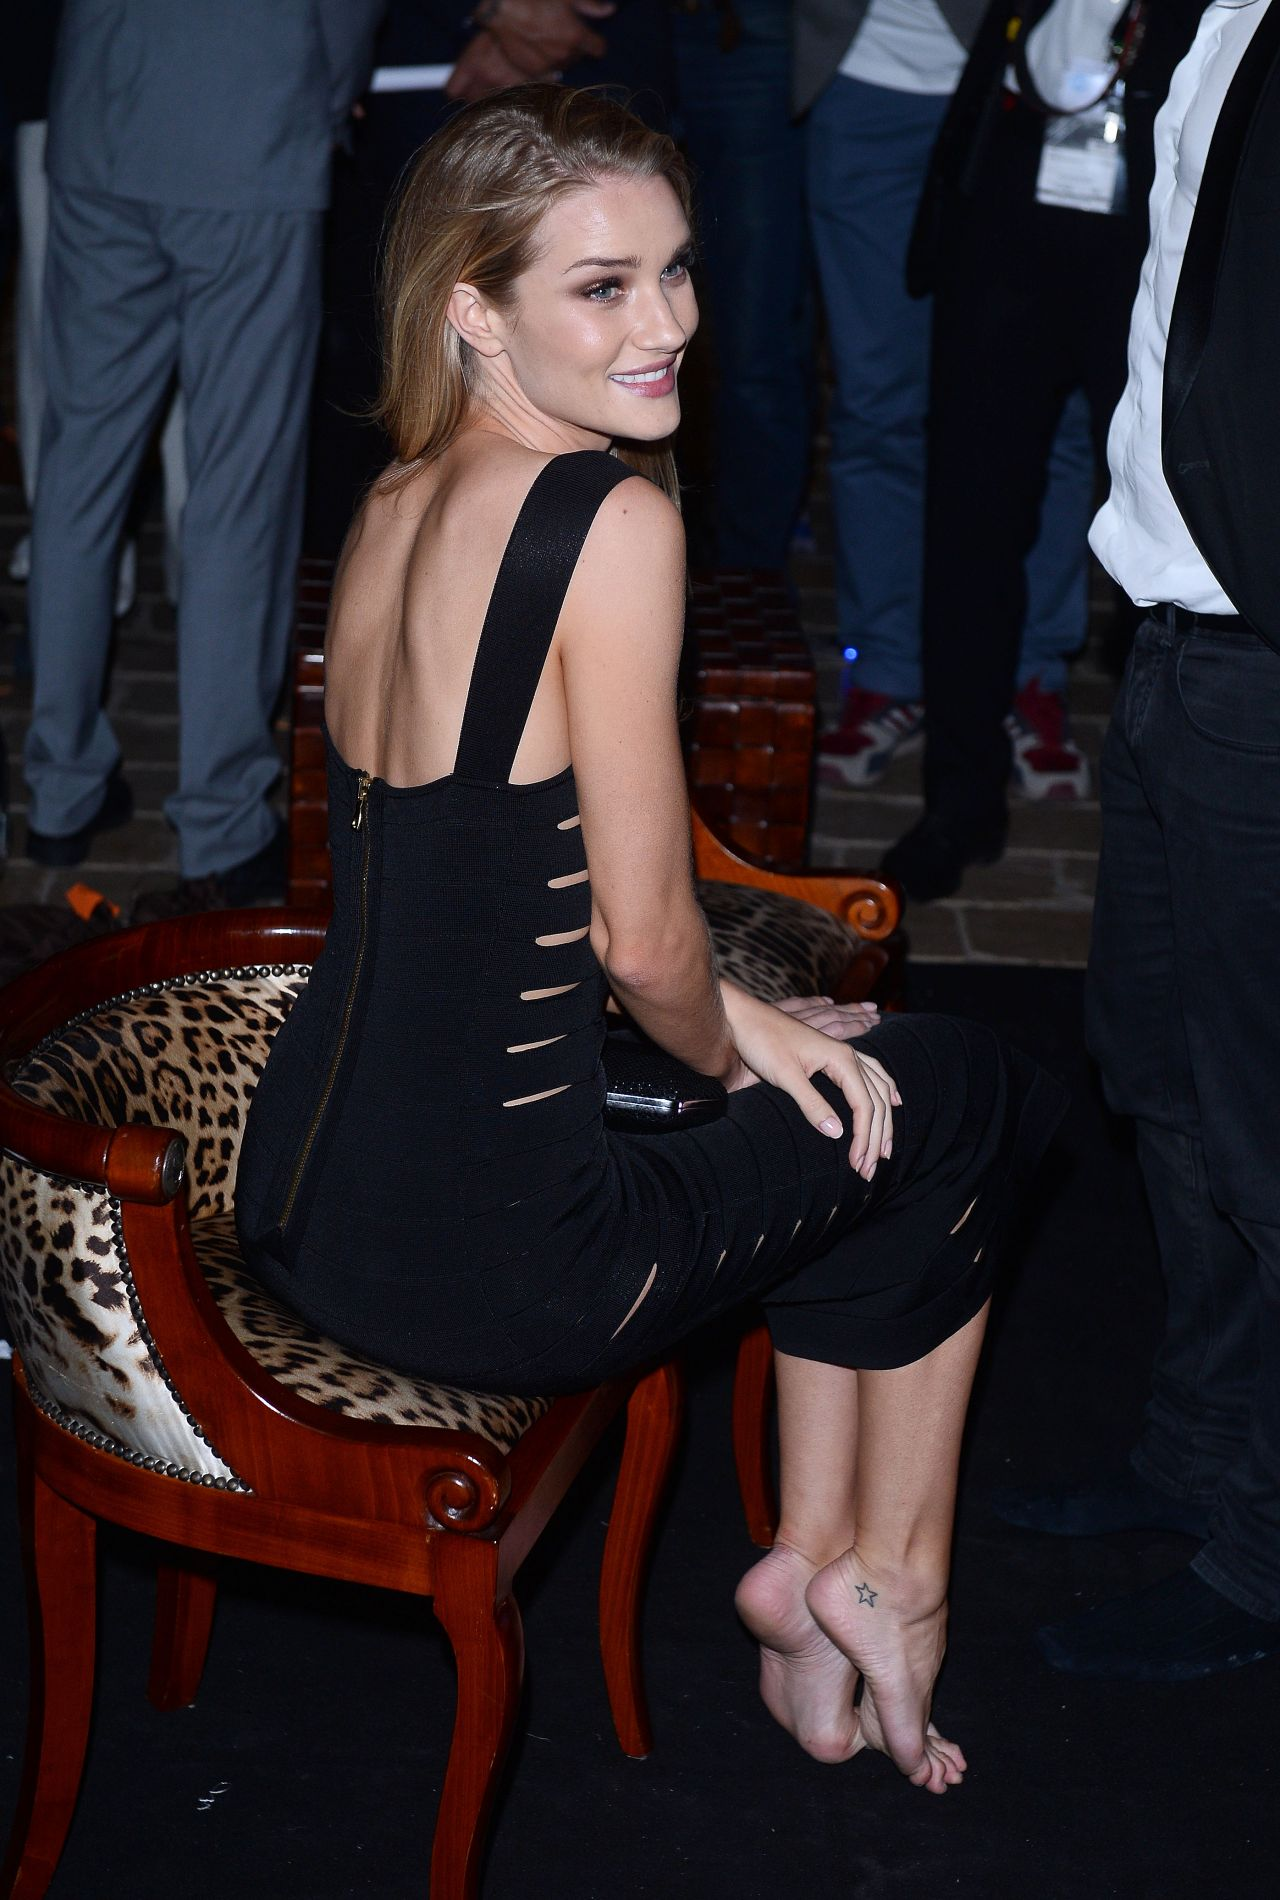 a60de63d30be7 Rosie Huntington-Whiteley – Roberto Cavalli Hosts Annual Party Aboard His  Yacht – 2014 Cannes Film Festival